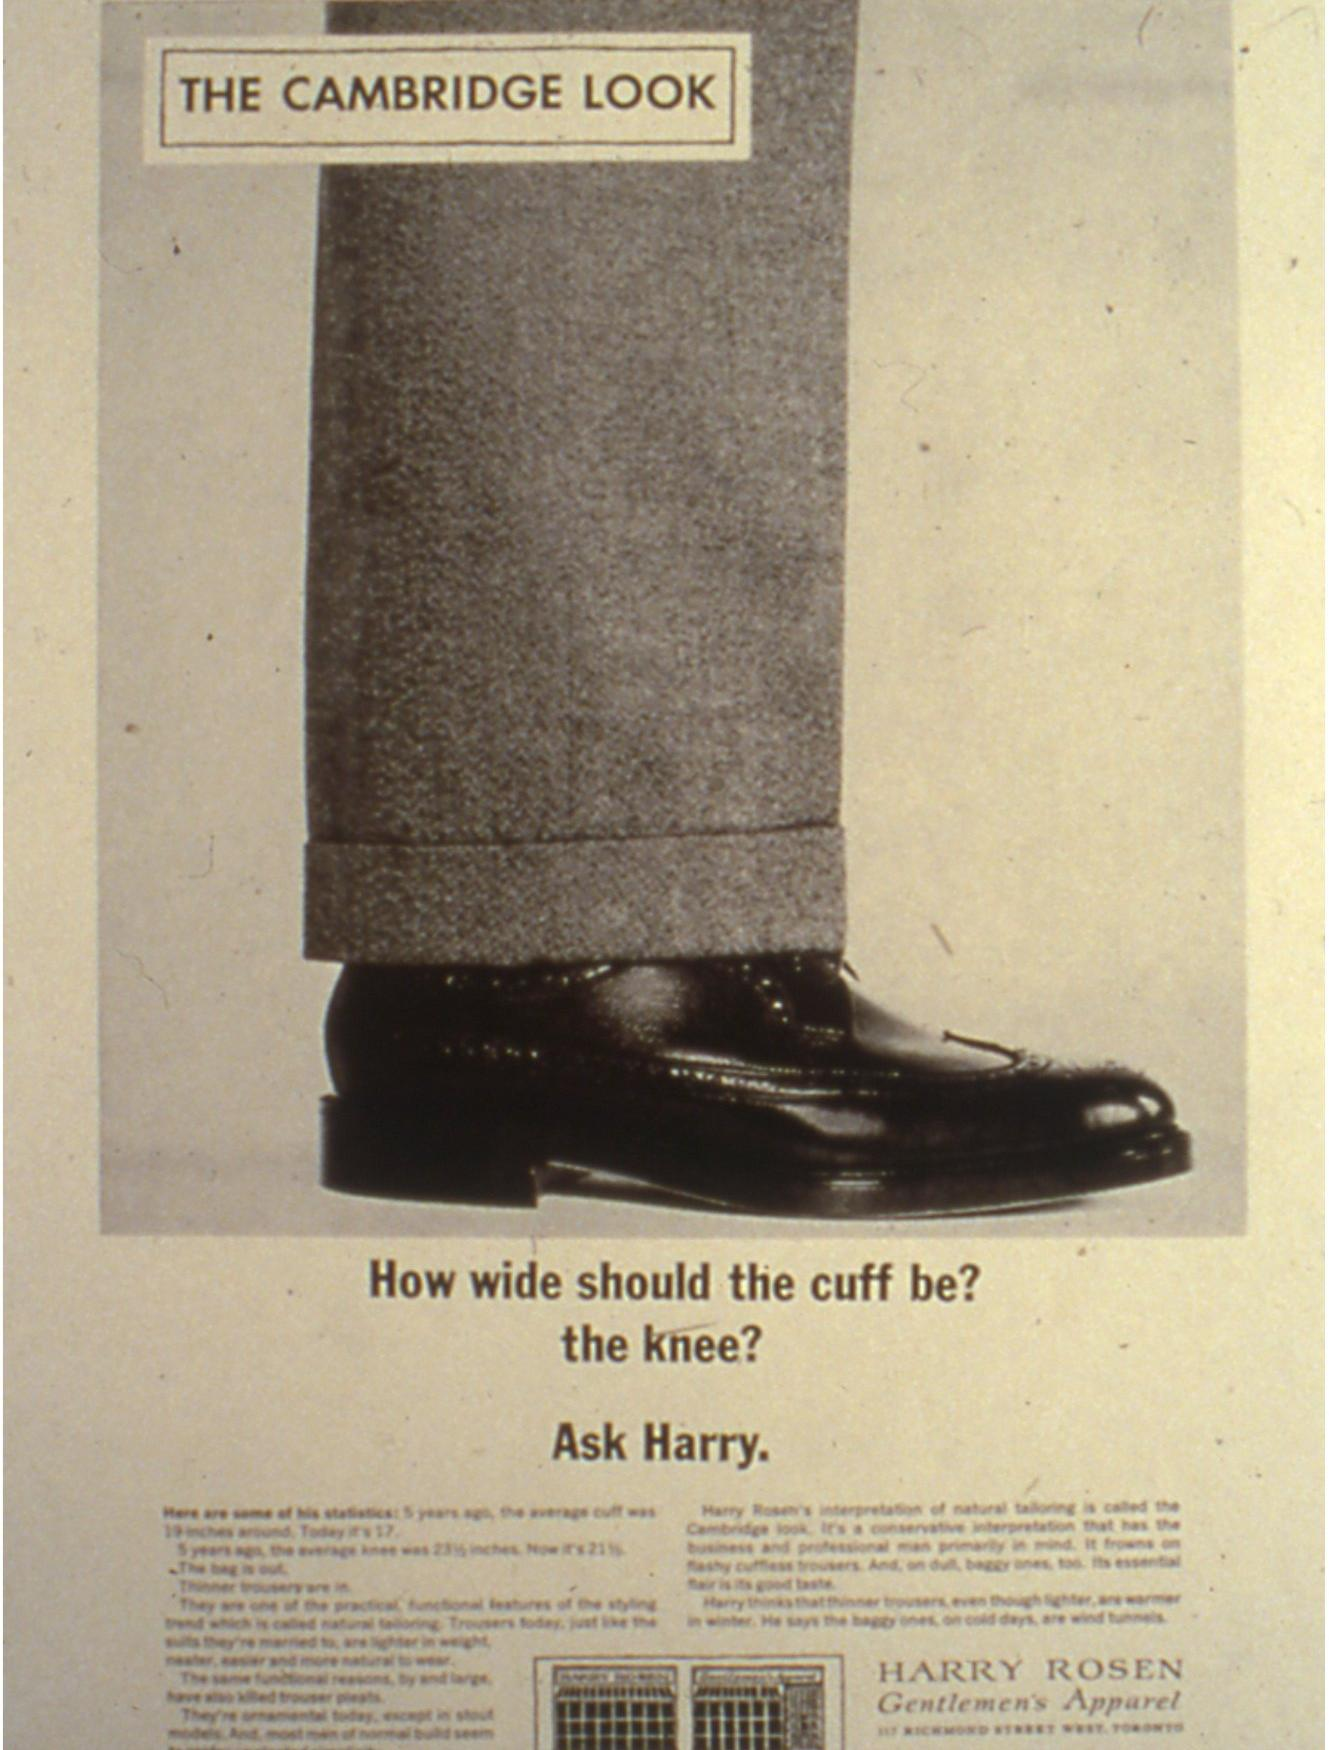 The iconic Ask Harry advertising campaign.